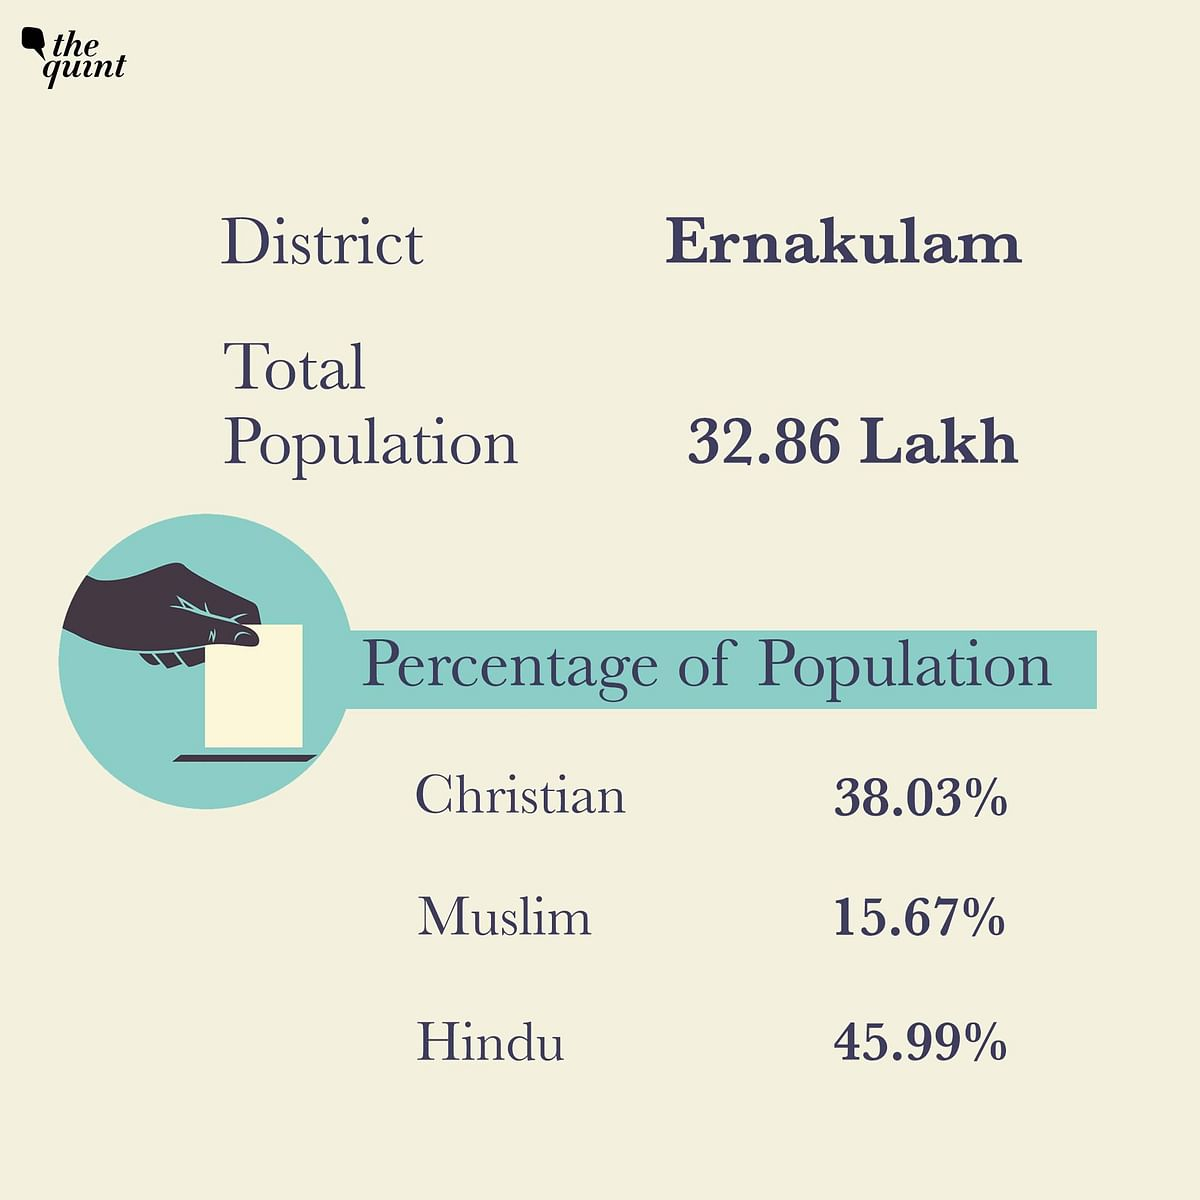 Christians form 38.03 per cent of the population in Ernakulam district.